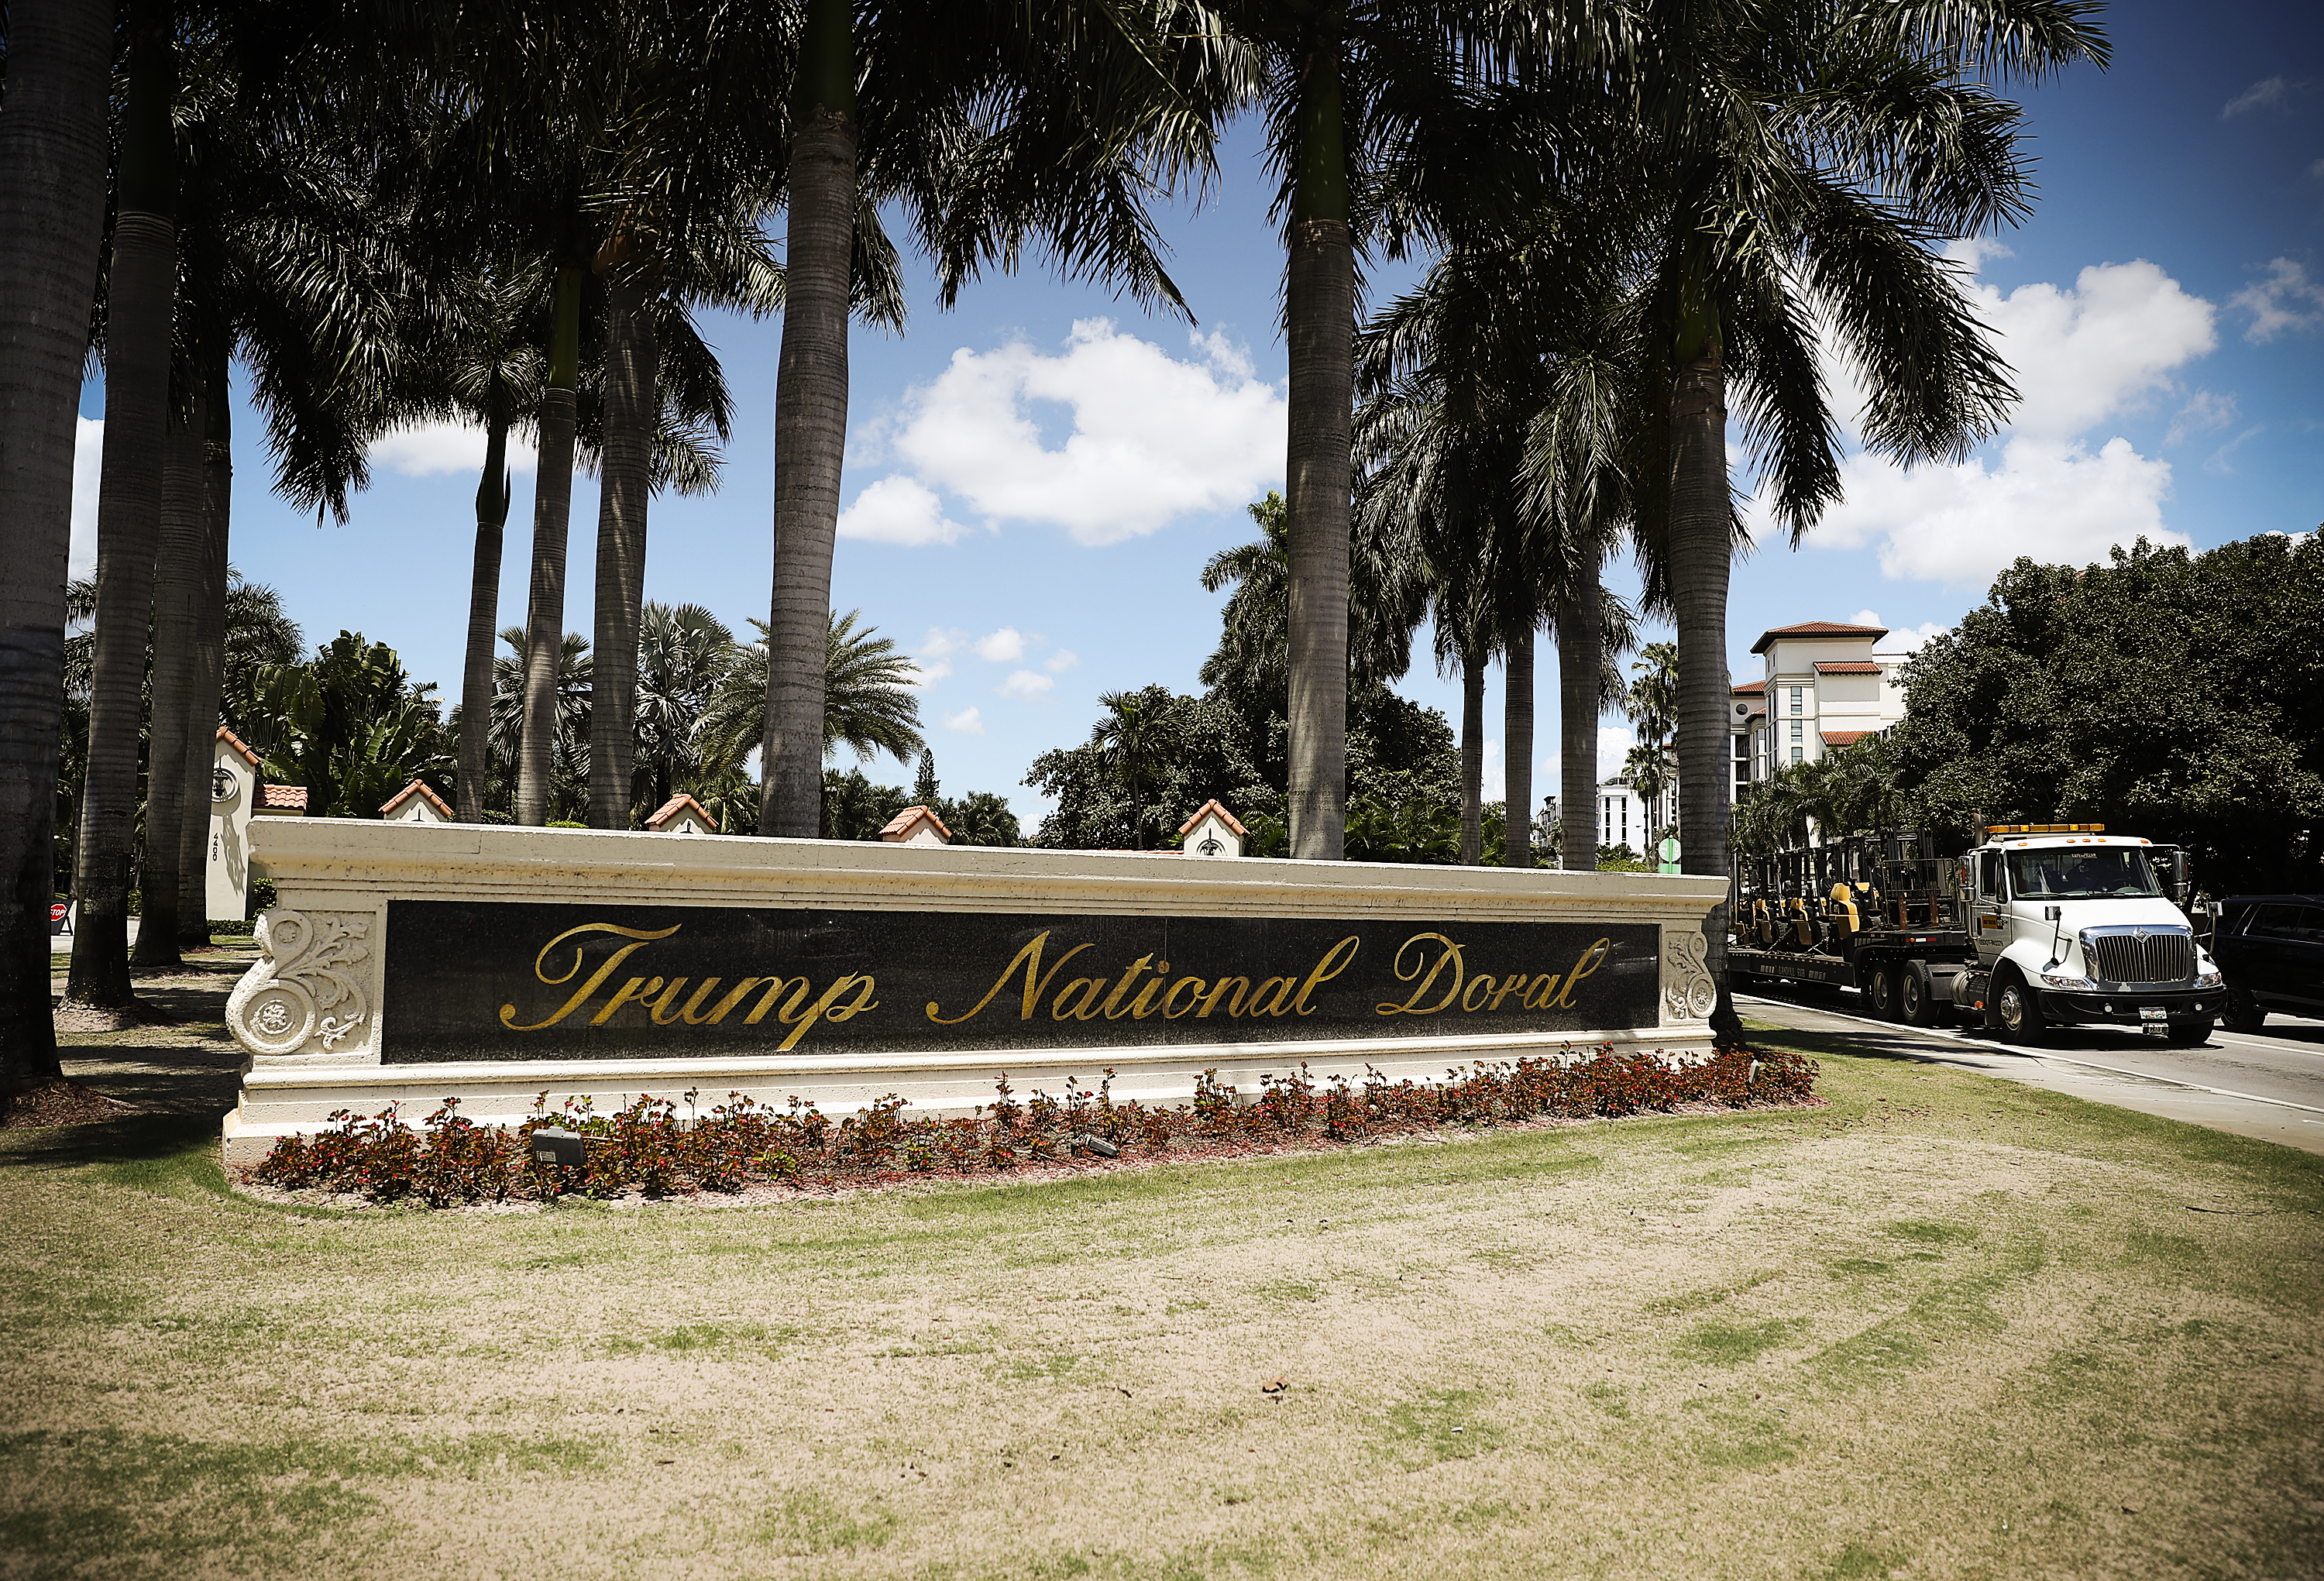 Palm trees surround the sign outside the Trump National Doral golf resort in Doral, Florida.